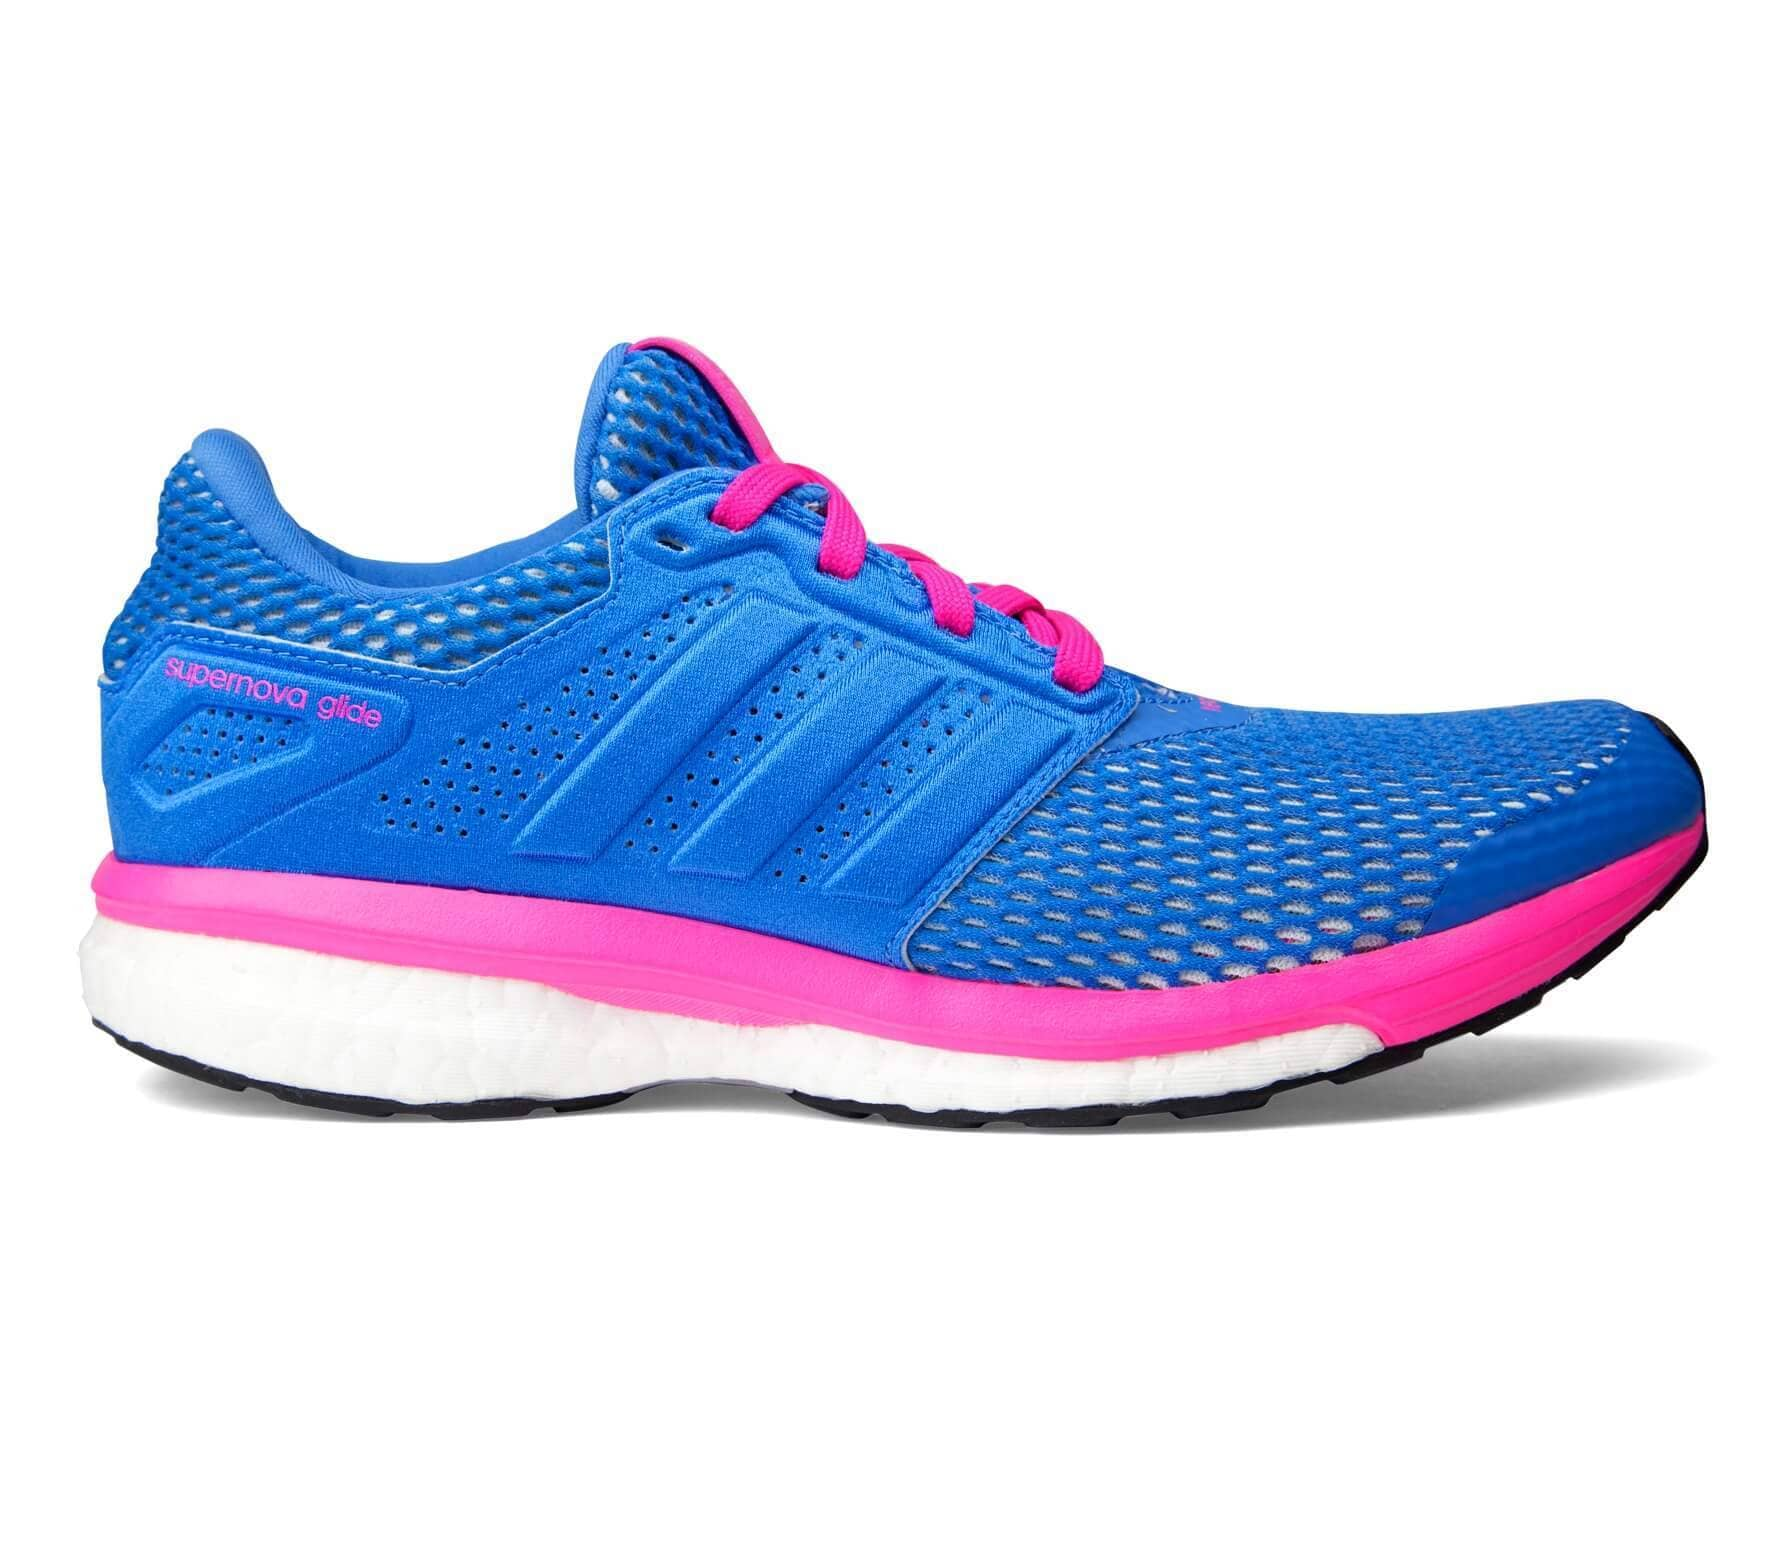 c827968aa Adidas - Supernova Glide Boost 8 Chill women s running shoes (blue pink)